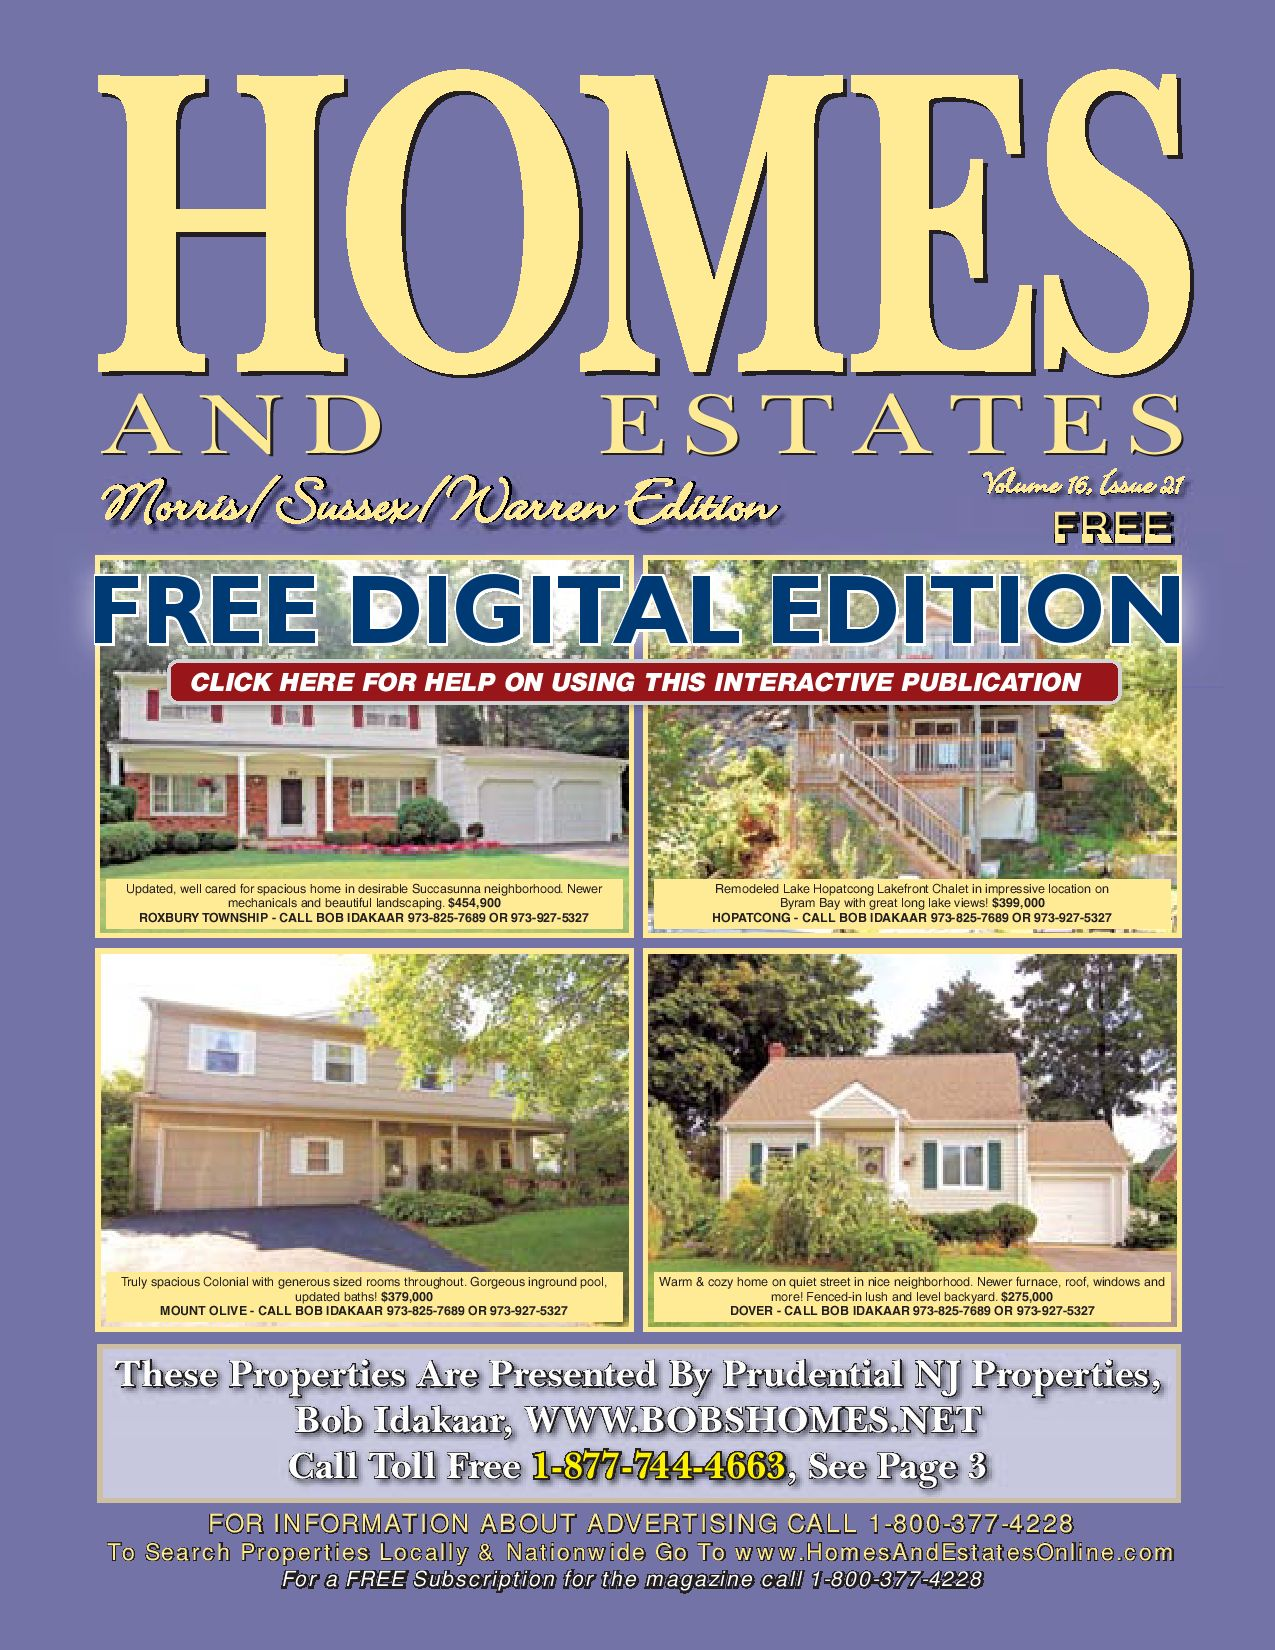 Homes and Estates Magazine Morris/Sussex/Warren NJ by Gene